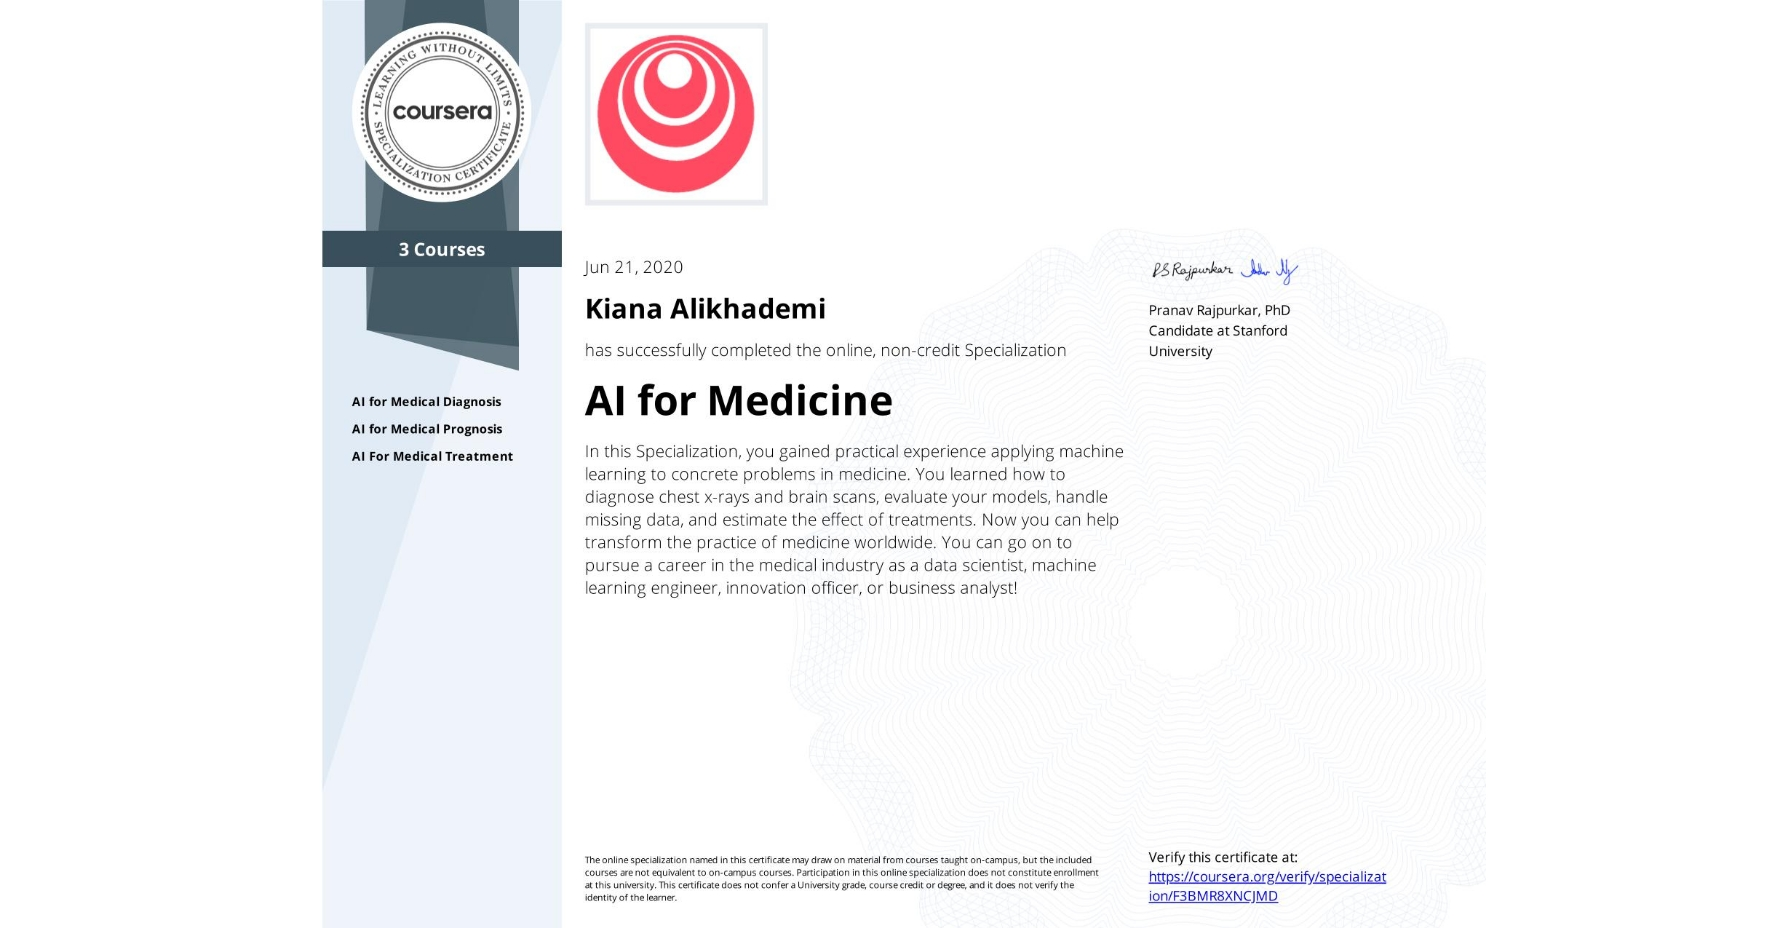 View certificate for Kiana Alikhademi, AI for Medicine, offered through Coursera. In this Specialization, you gained practical experience applying machine learning to concrete problems in medicine. You learned how to diagnose chest x-rays and brain scans, evaluate your models, handle missing data, and estimate the effect of treatments.   Now you can help transform the practice of medicine worldwide. You can go on to pursue a career in the medical industry as a data scientist, machine learning engineer, innovation officer, or business analyst!